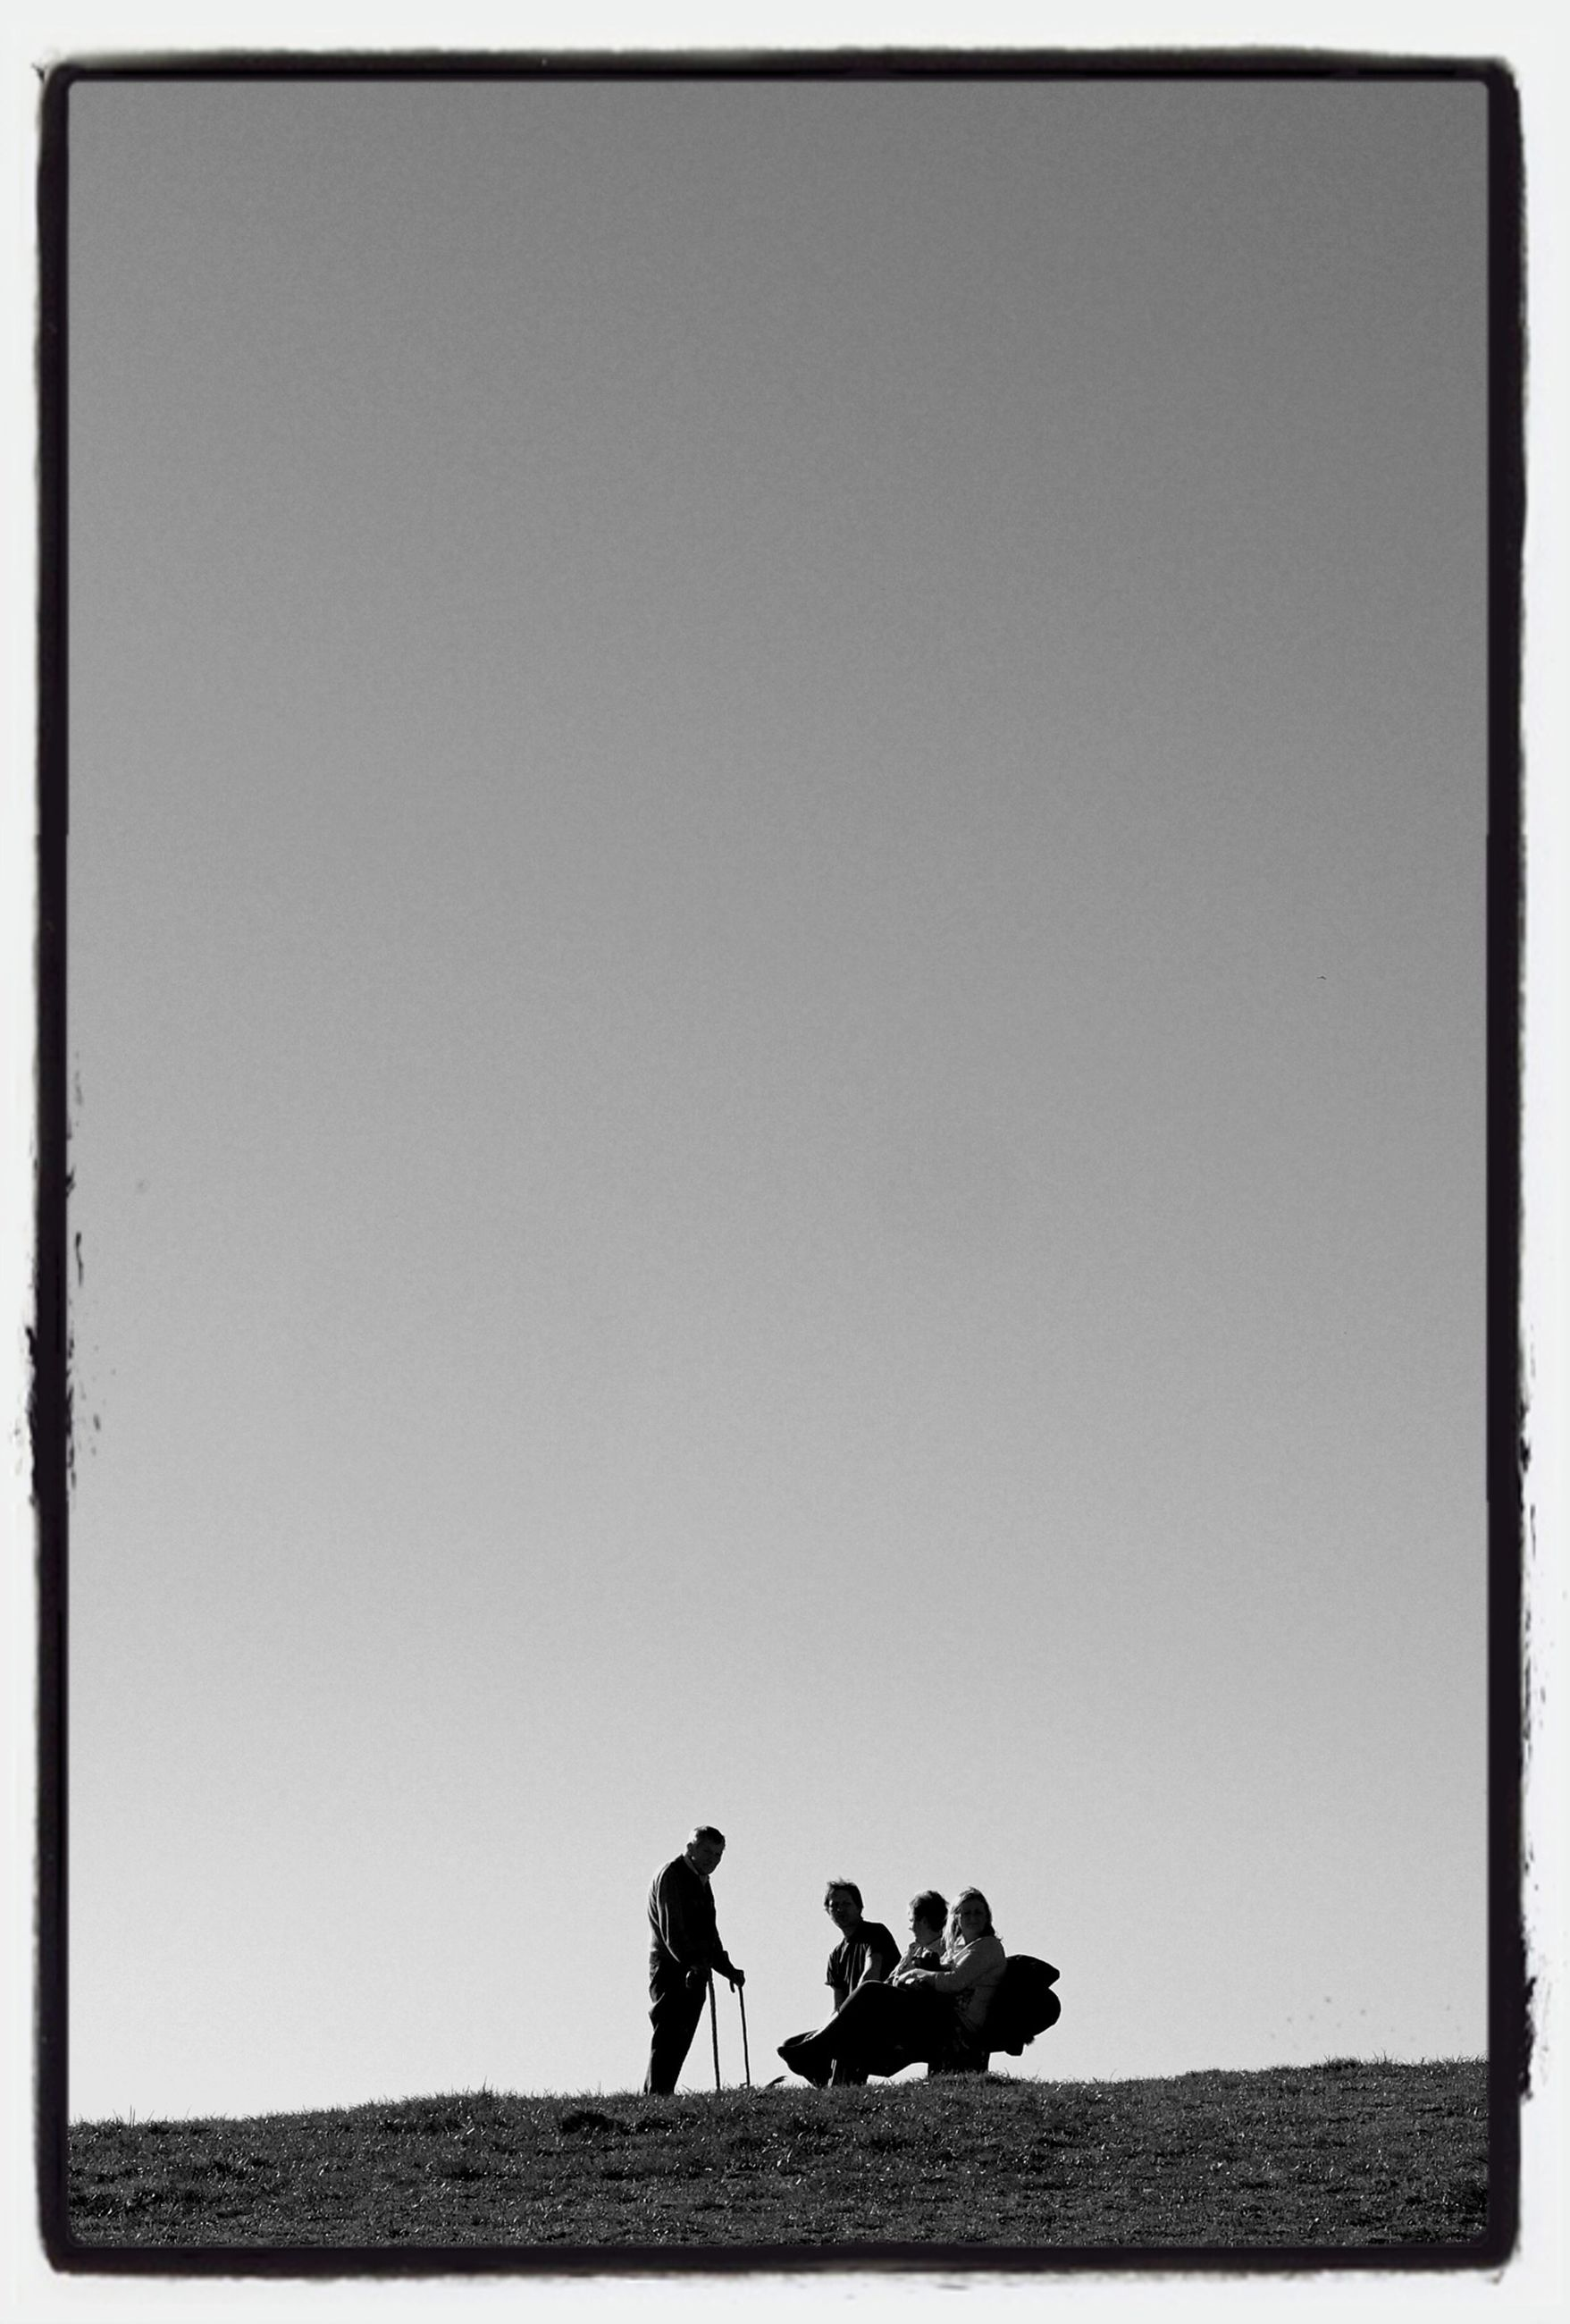 men, copy space, lifestyles, togetherness, leisure activity, clear sky, transfer print, silhouette, person, auto post production filter, bonding, rear view, sitting, full length, standing, friendship